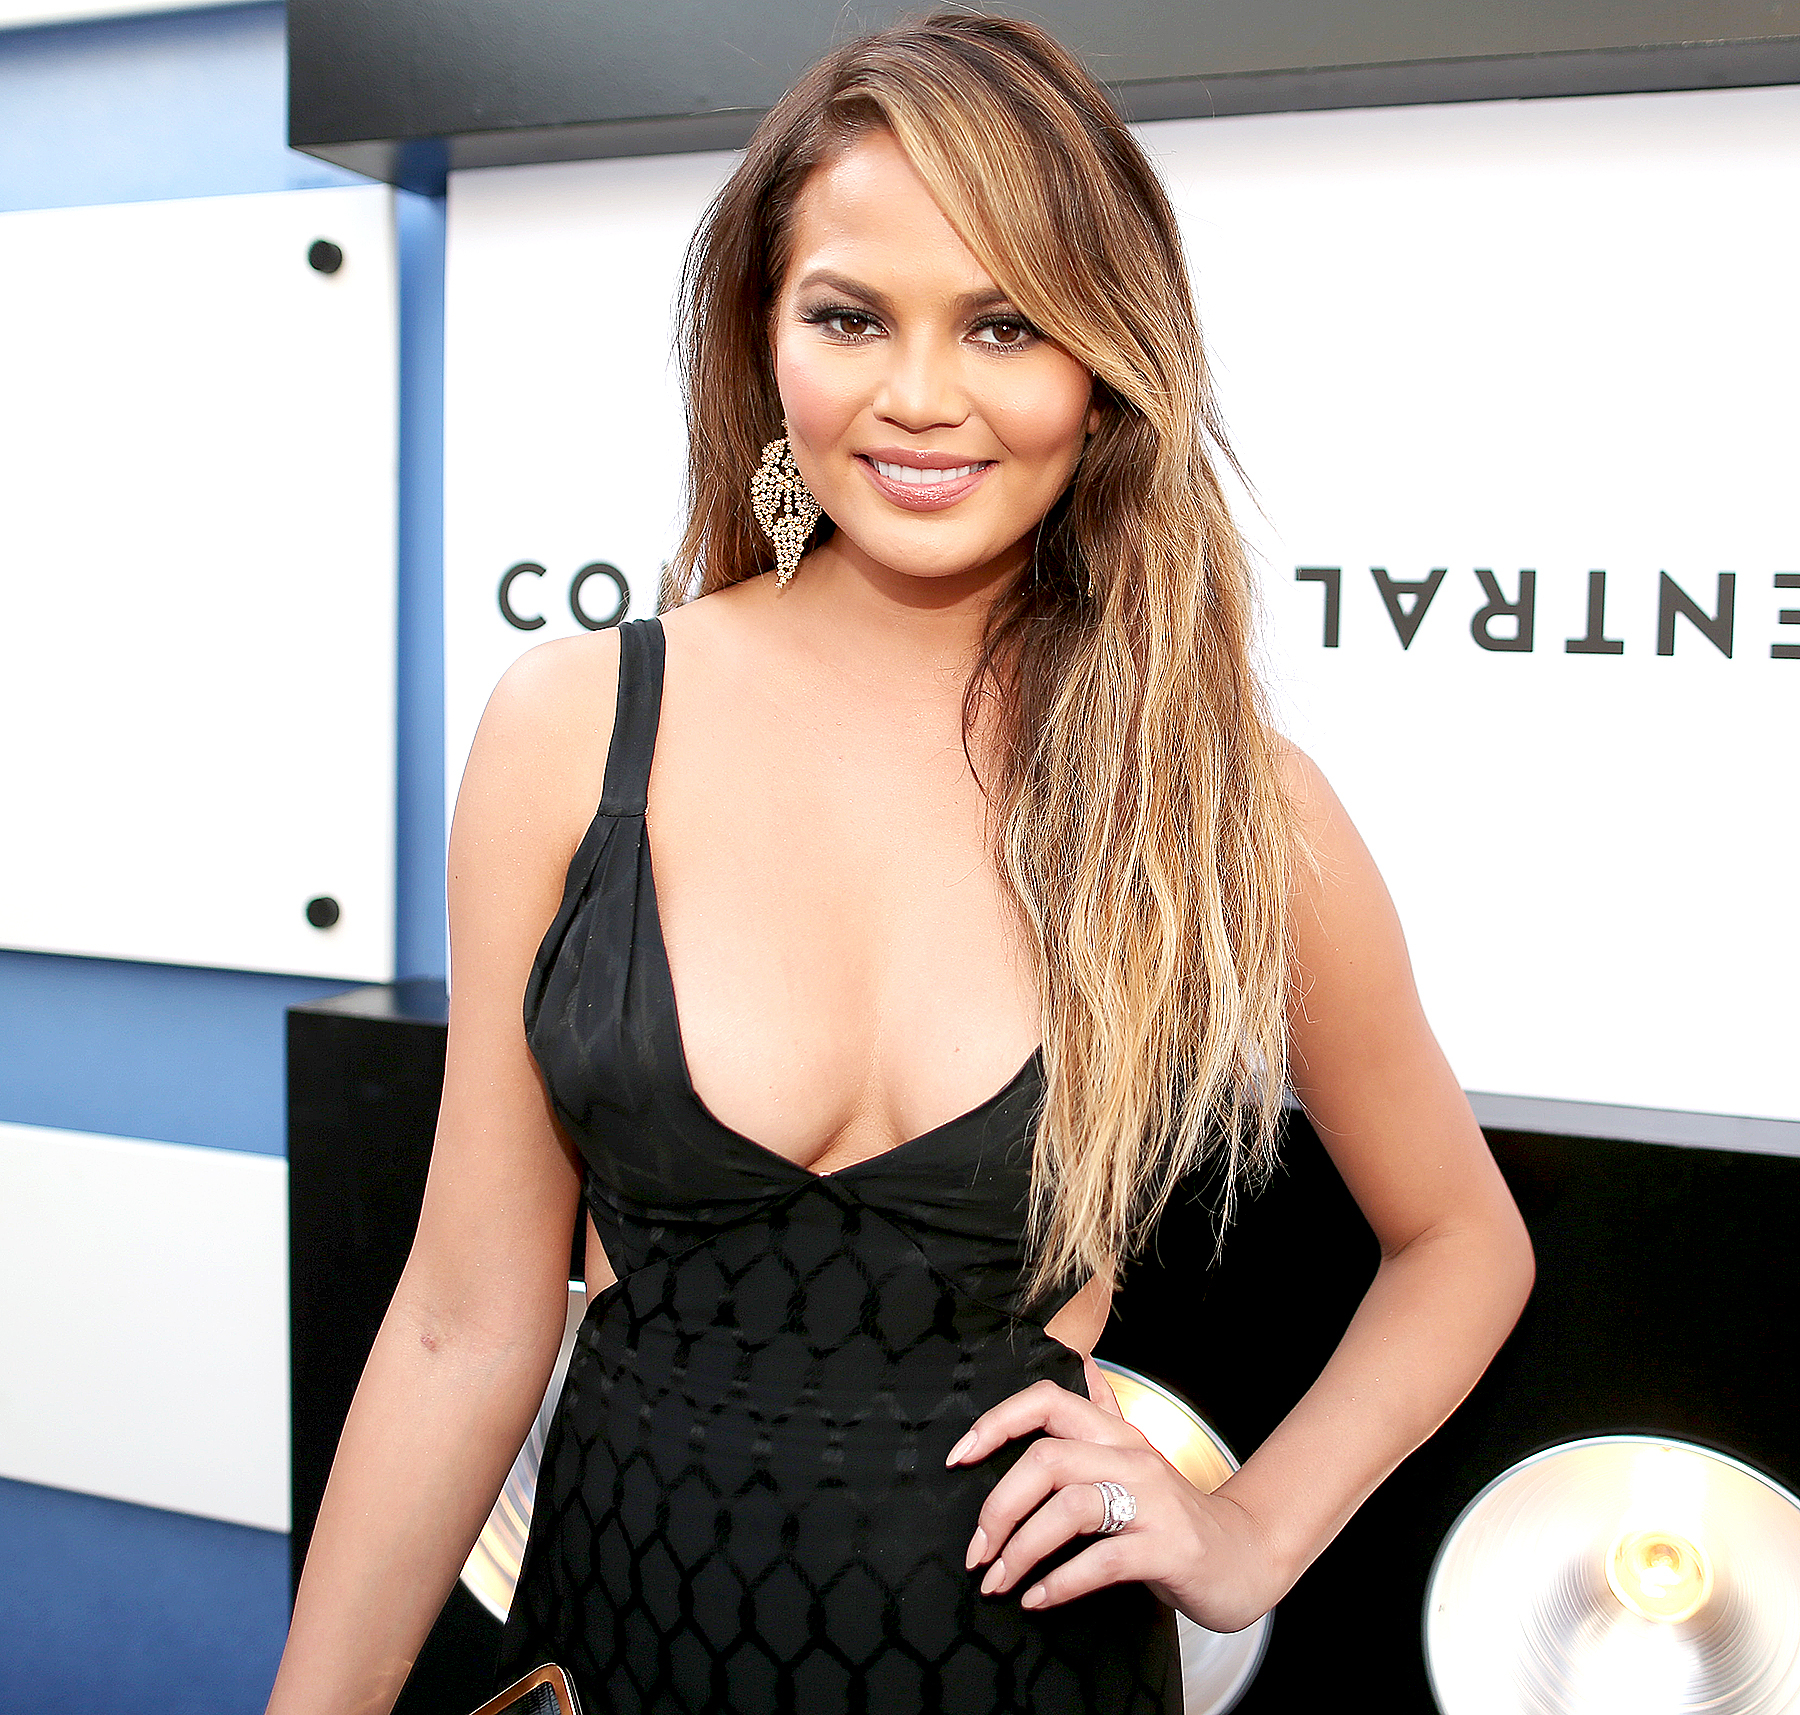 Chrissy Teigen attends The Comedy Central Roast of Justin Bieber at Sony Pictures Studios on March 14, 2015 in Los Angeles, California.